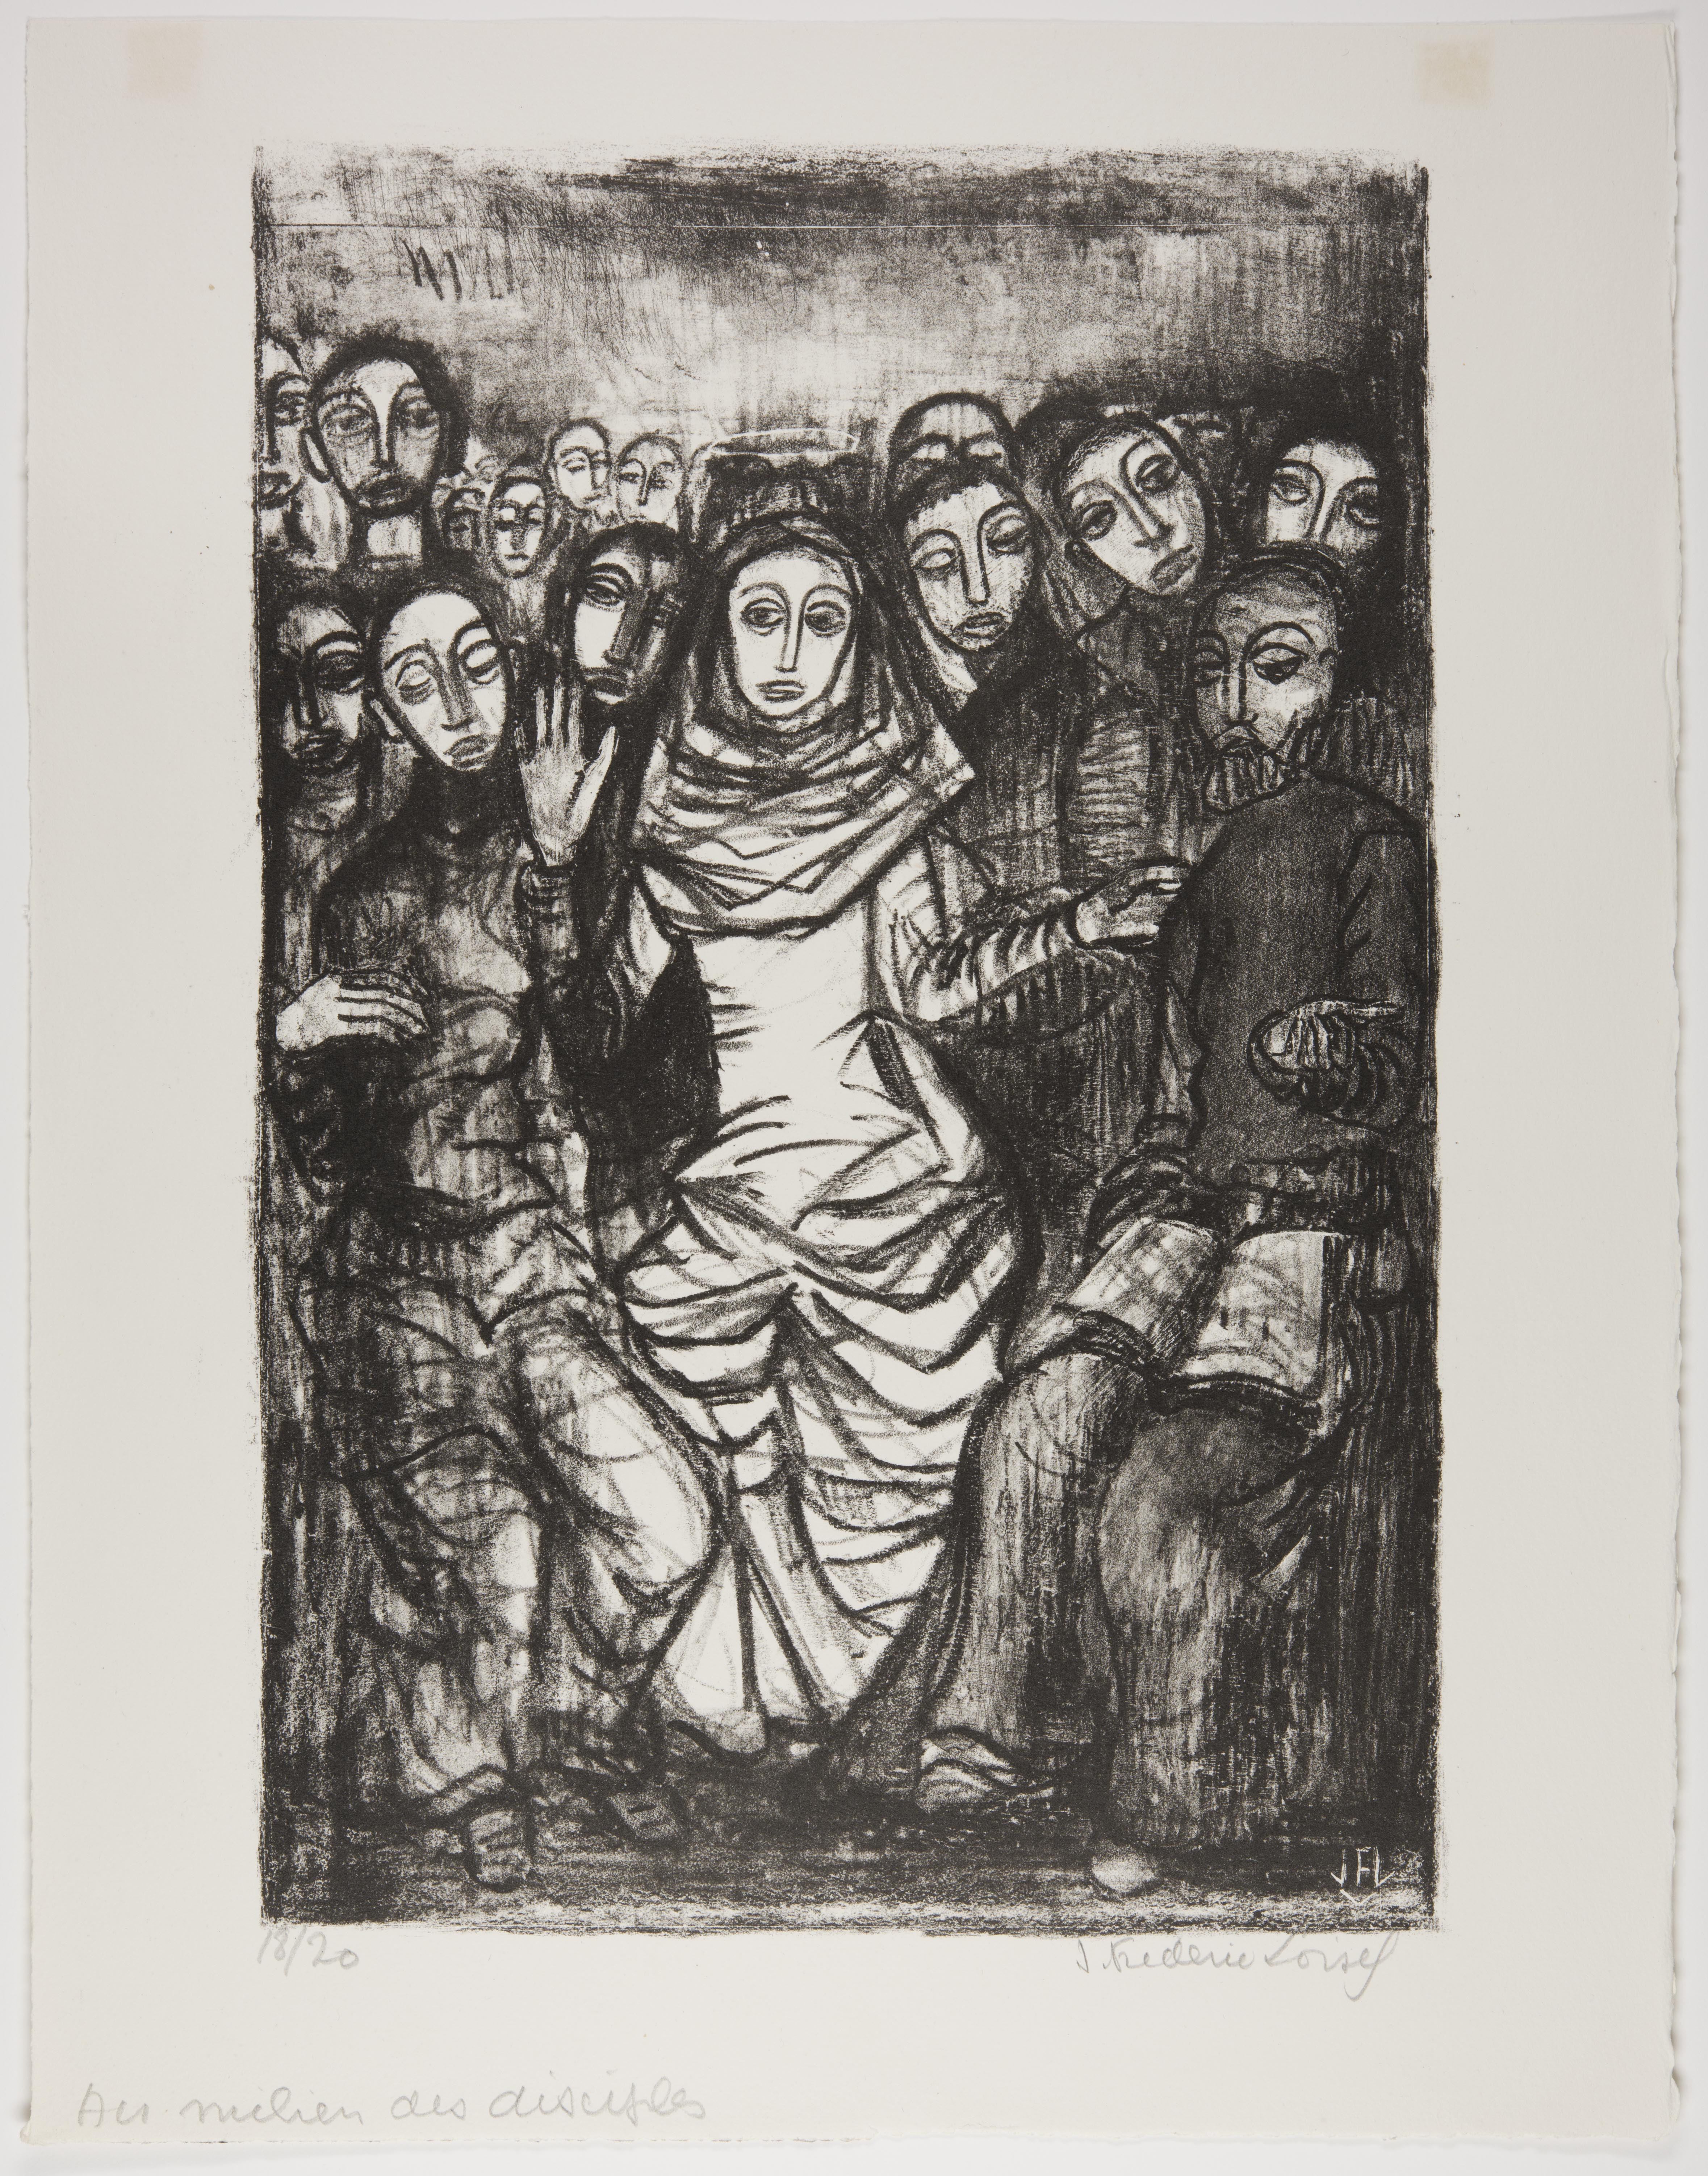 J. Frederic Loisel, In the Midst of the Disciples, 1949